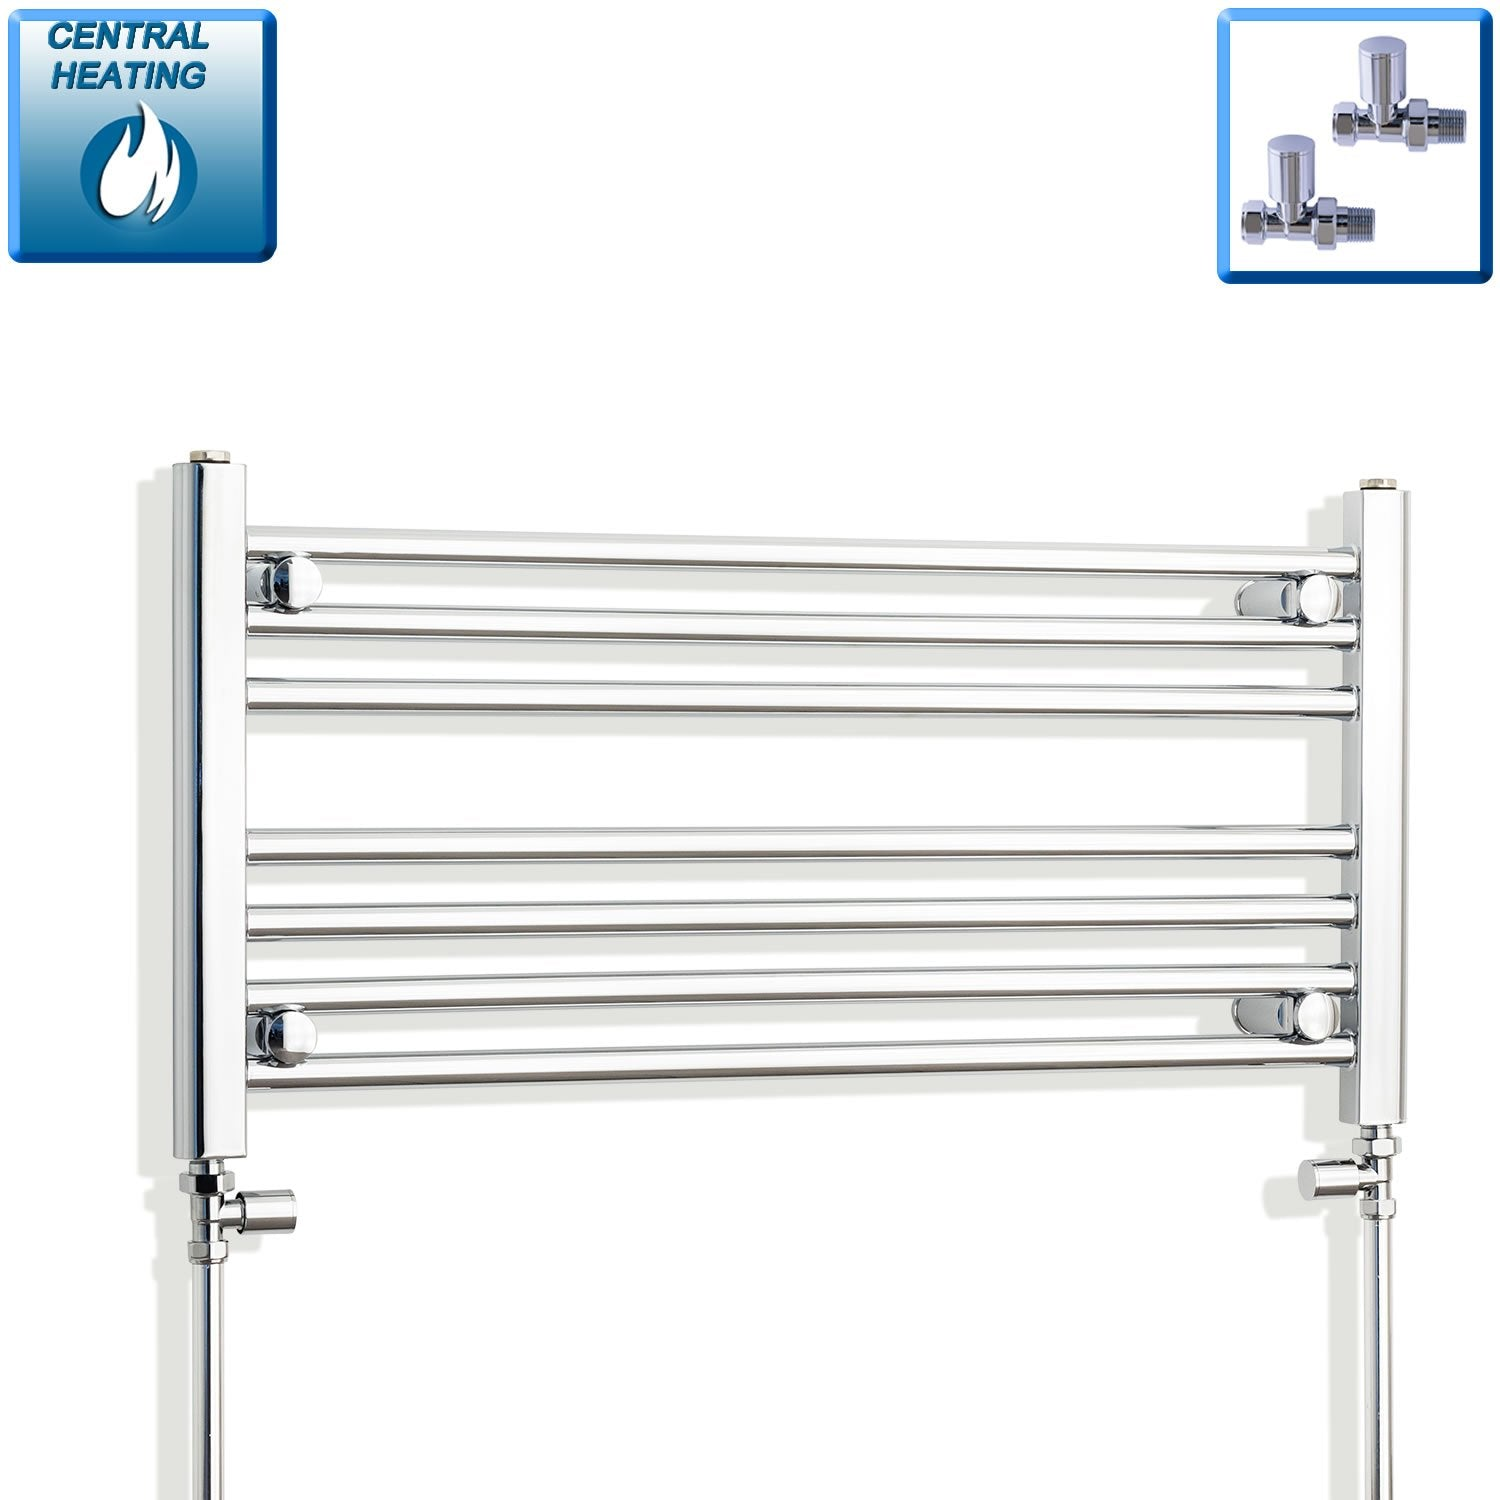 750mm Wide 400mm High Flat Chrome Heated Towel Rail Radiator HTR,With Straight Valve